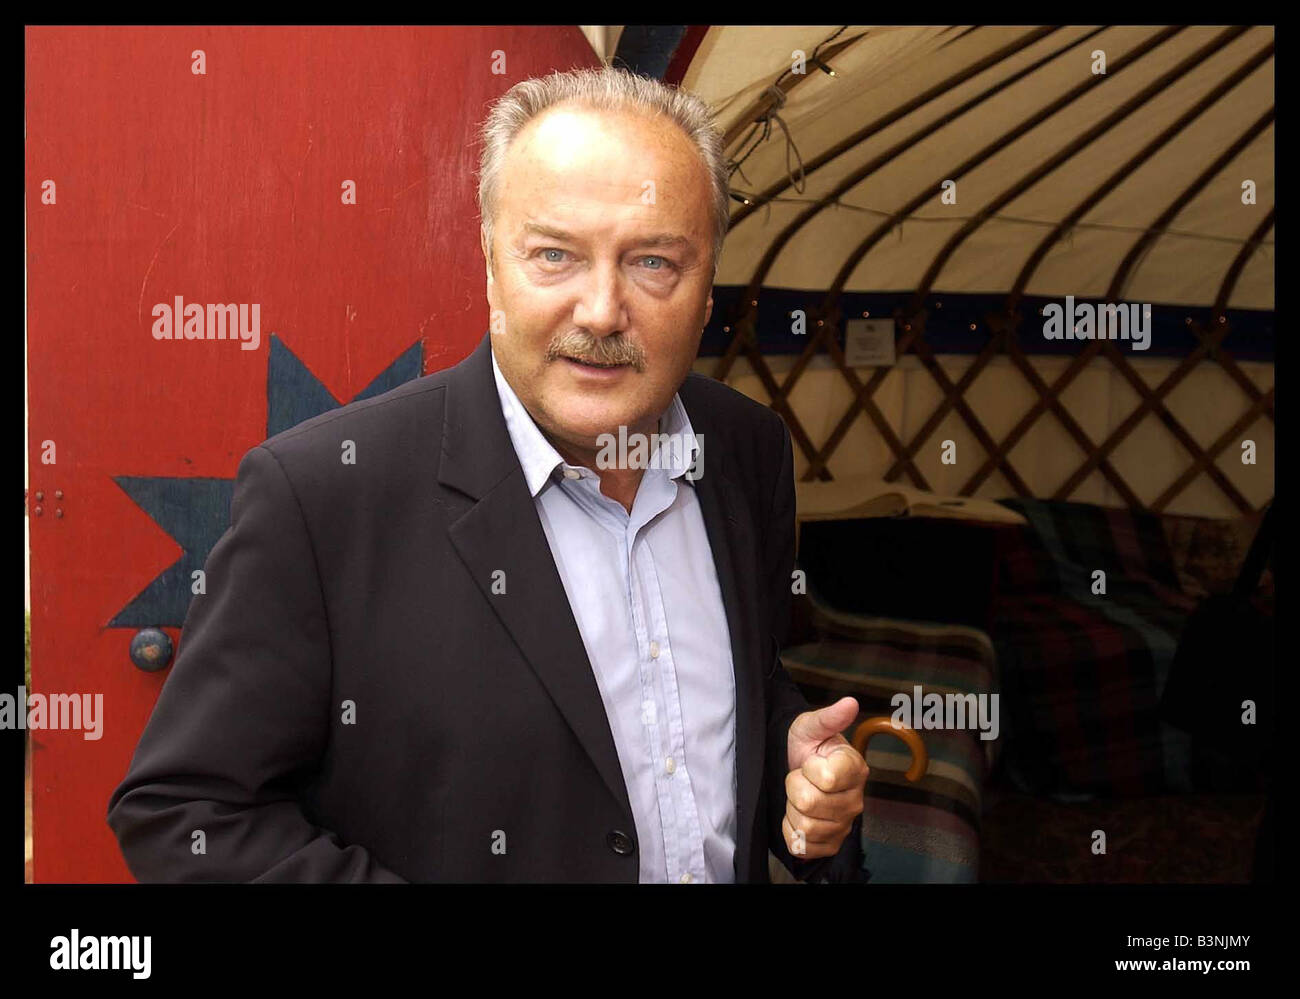 George Galloway at the photocall held at the Book Festival in Edinburgh today August 2004 - Stock Image